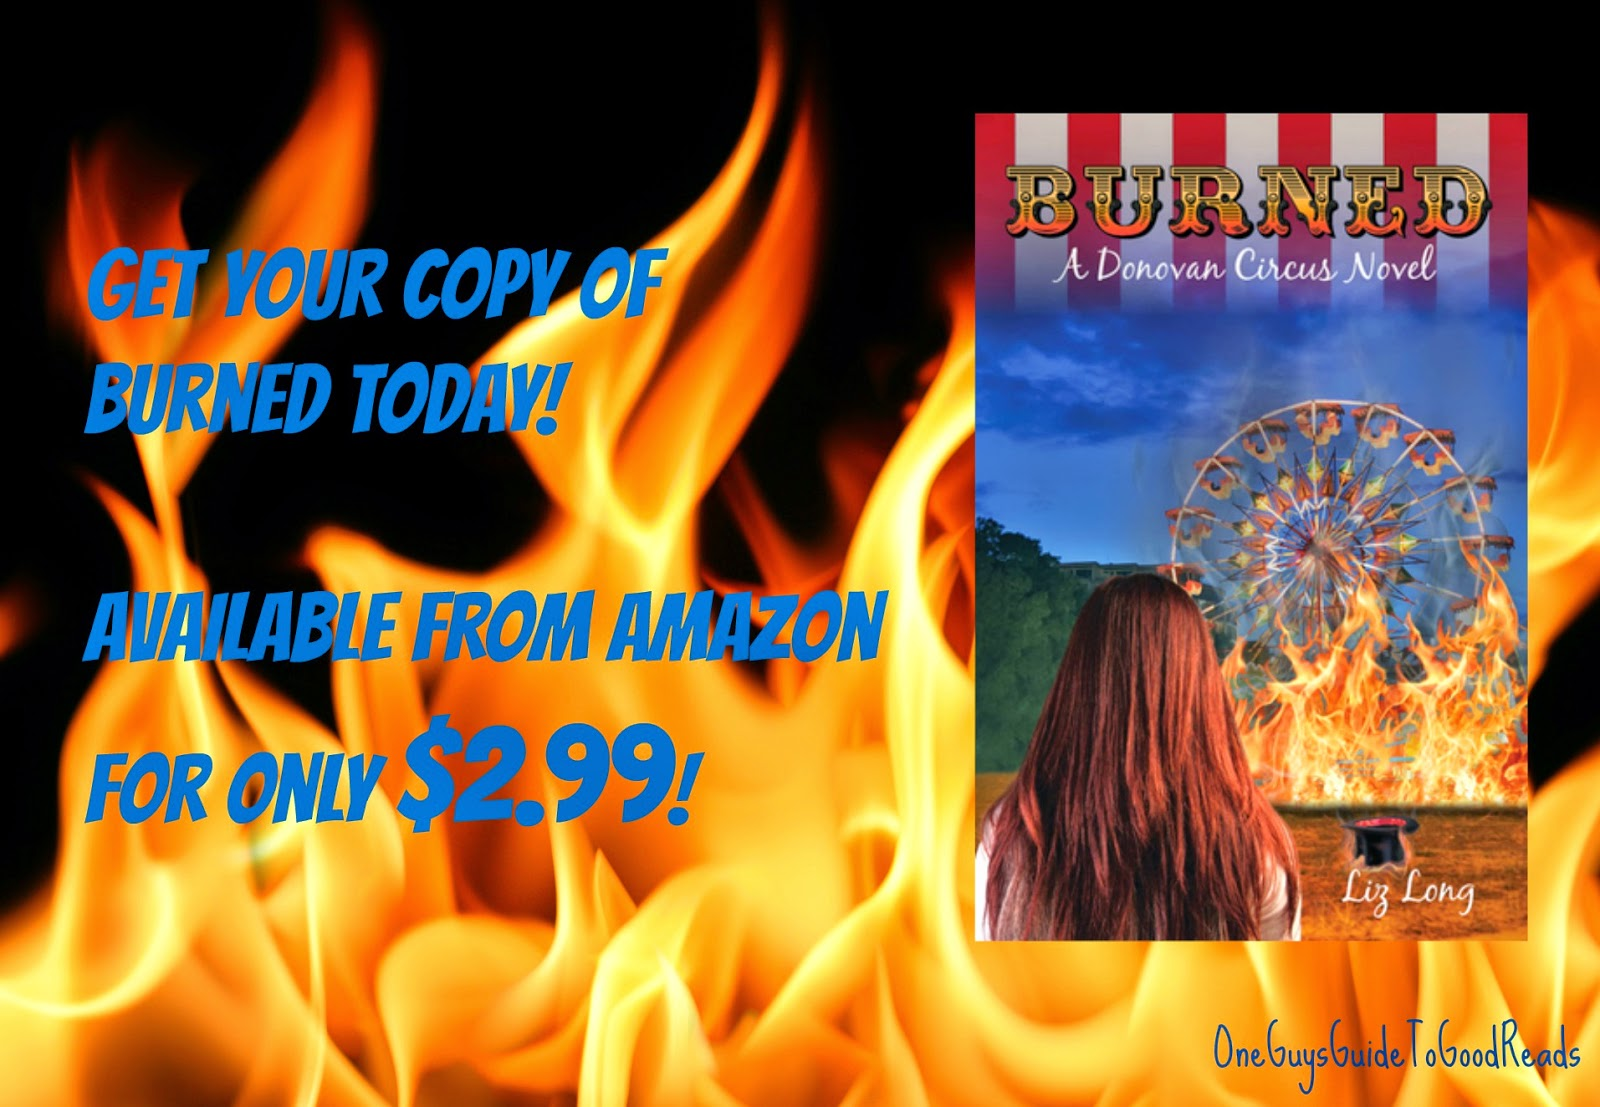 http://www.amazon.com/Burned-Donovan-Circus-Novel-Book-ebook/dp/B00HCQ1N9W/ref=tmm_kin_swatch_0?_encoding=UTF8&sr=&qid=